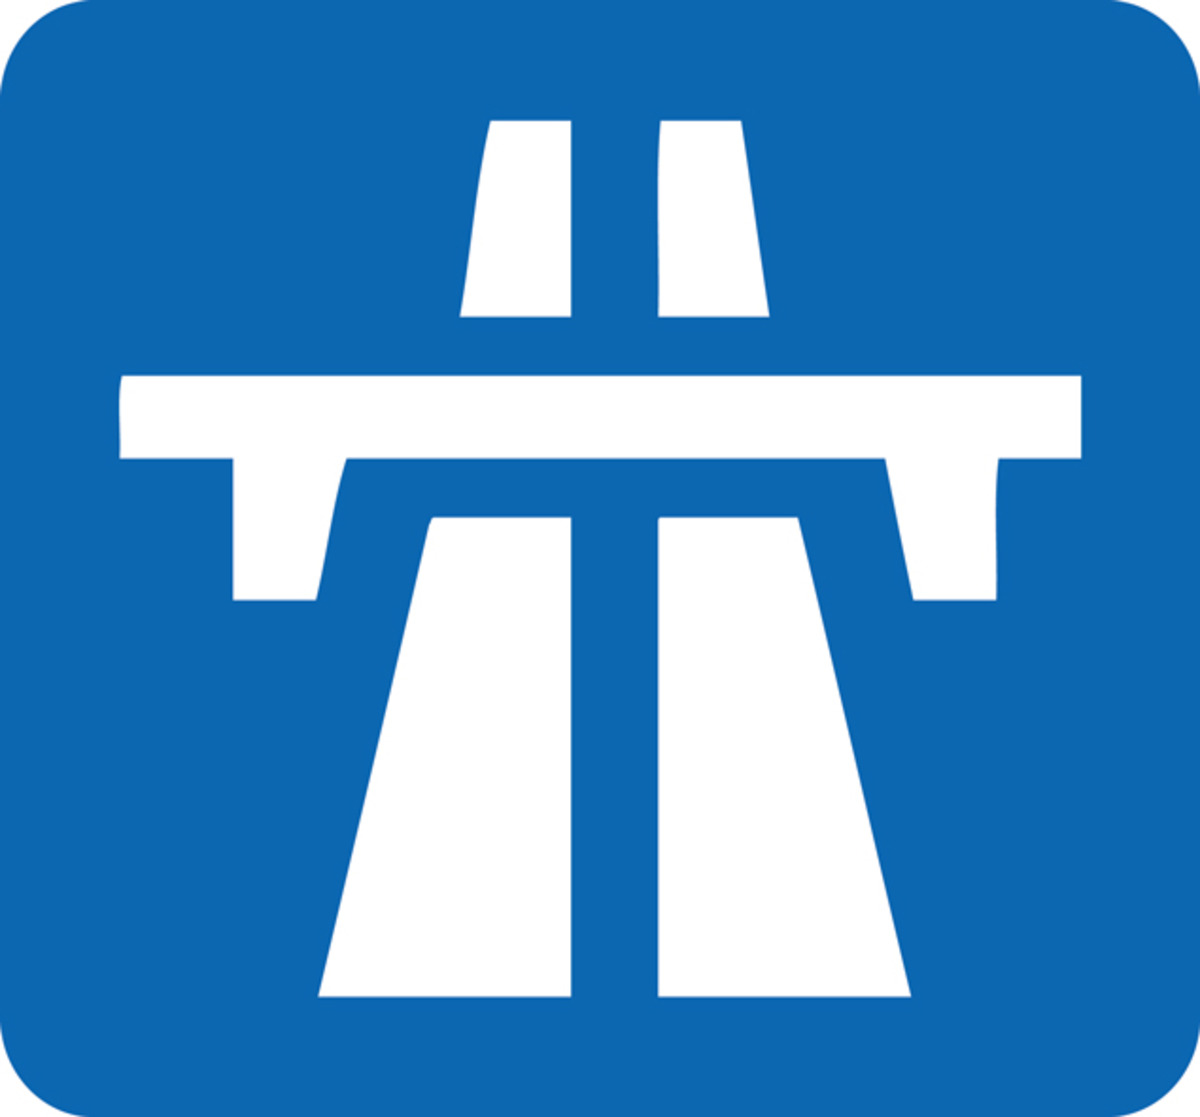 One lane of M5 southbound closed